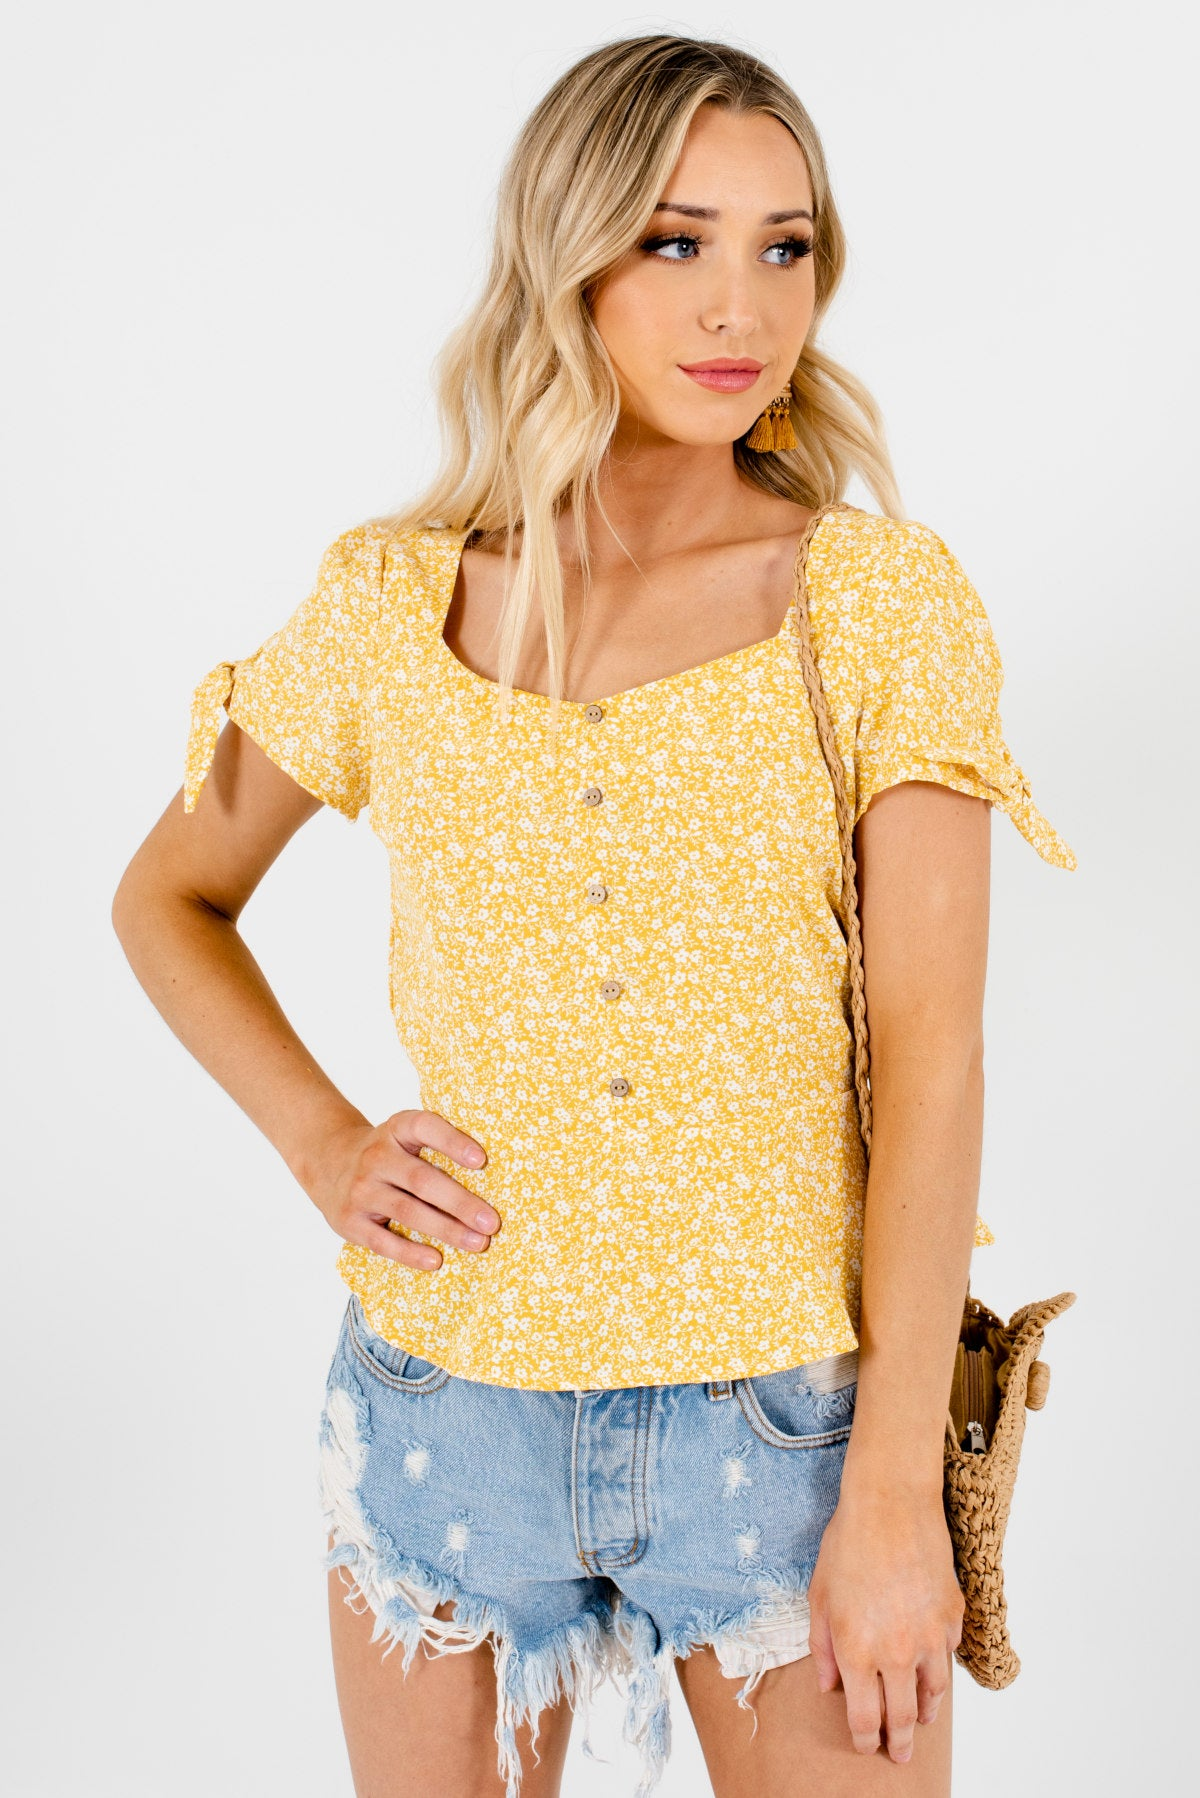 Yellow and White Floral Patterned Boutique Tops for Women